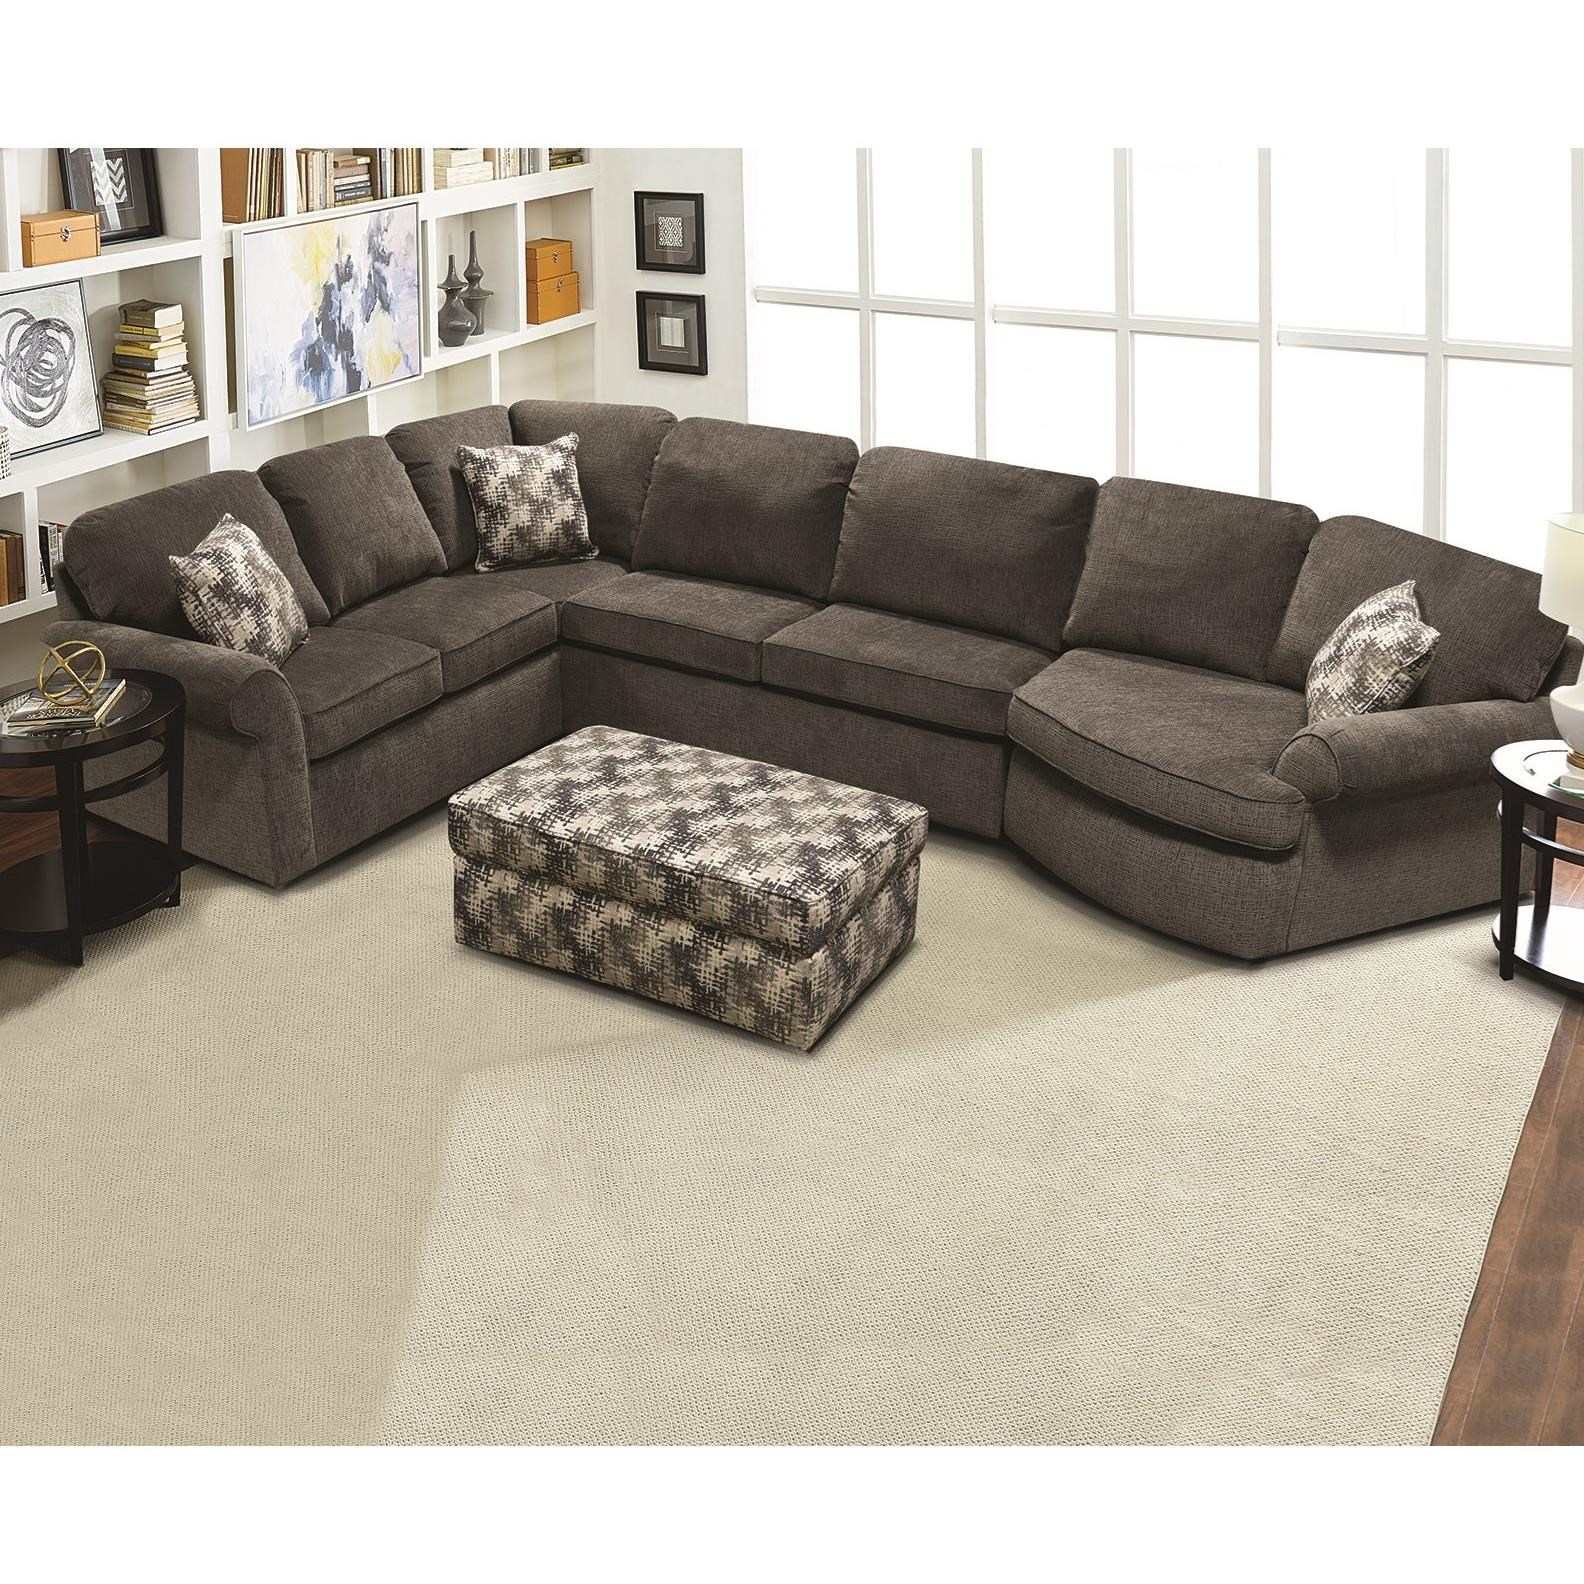 England Malibu Casual 3-Piece Sectional | Fashion ...